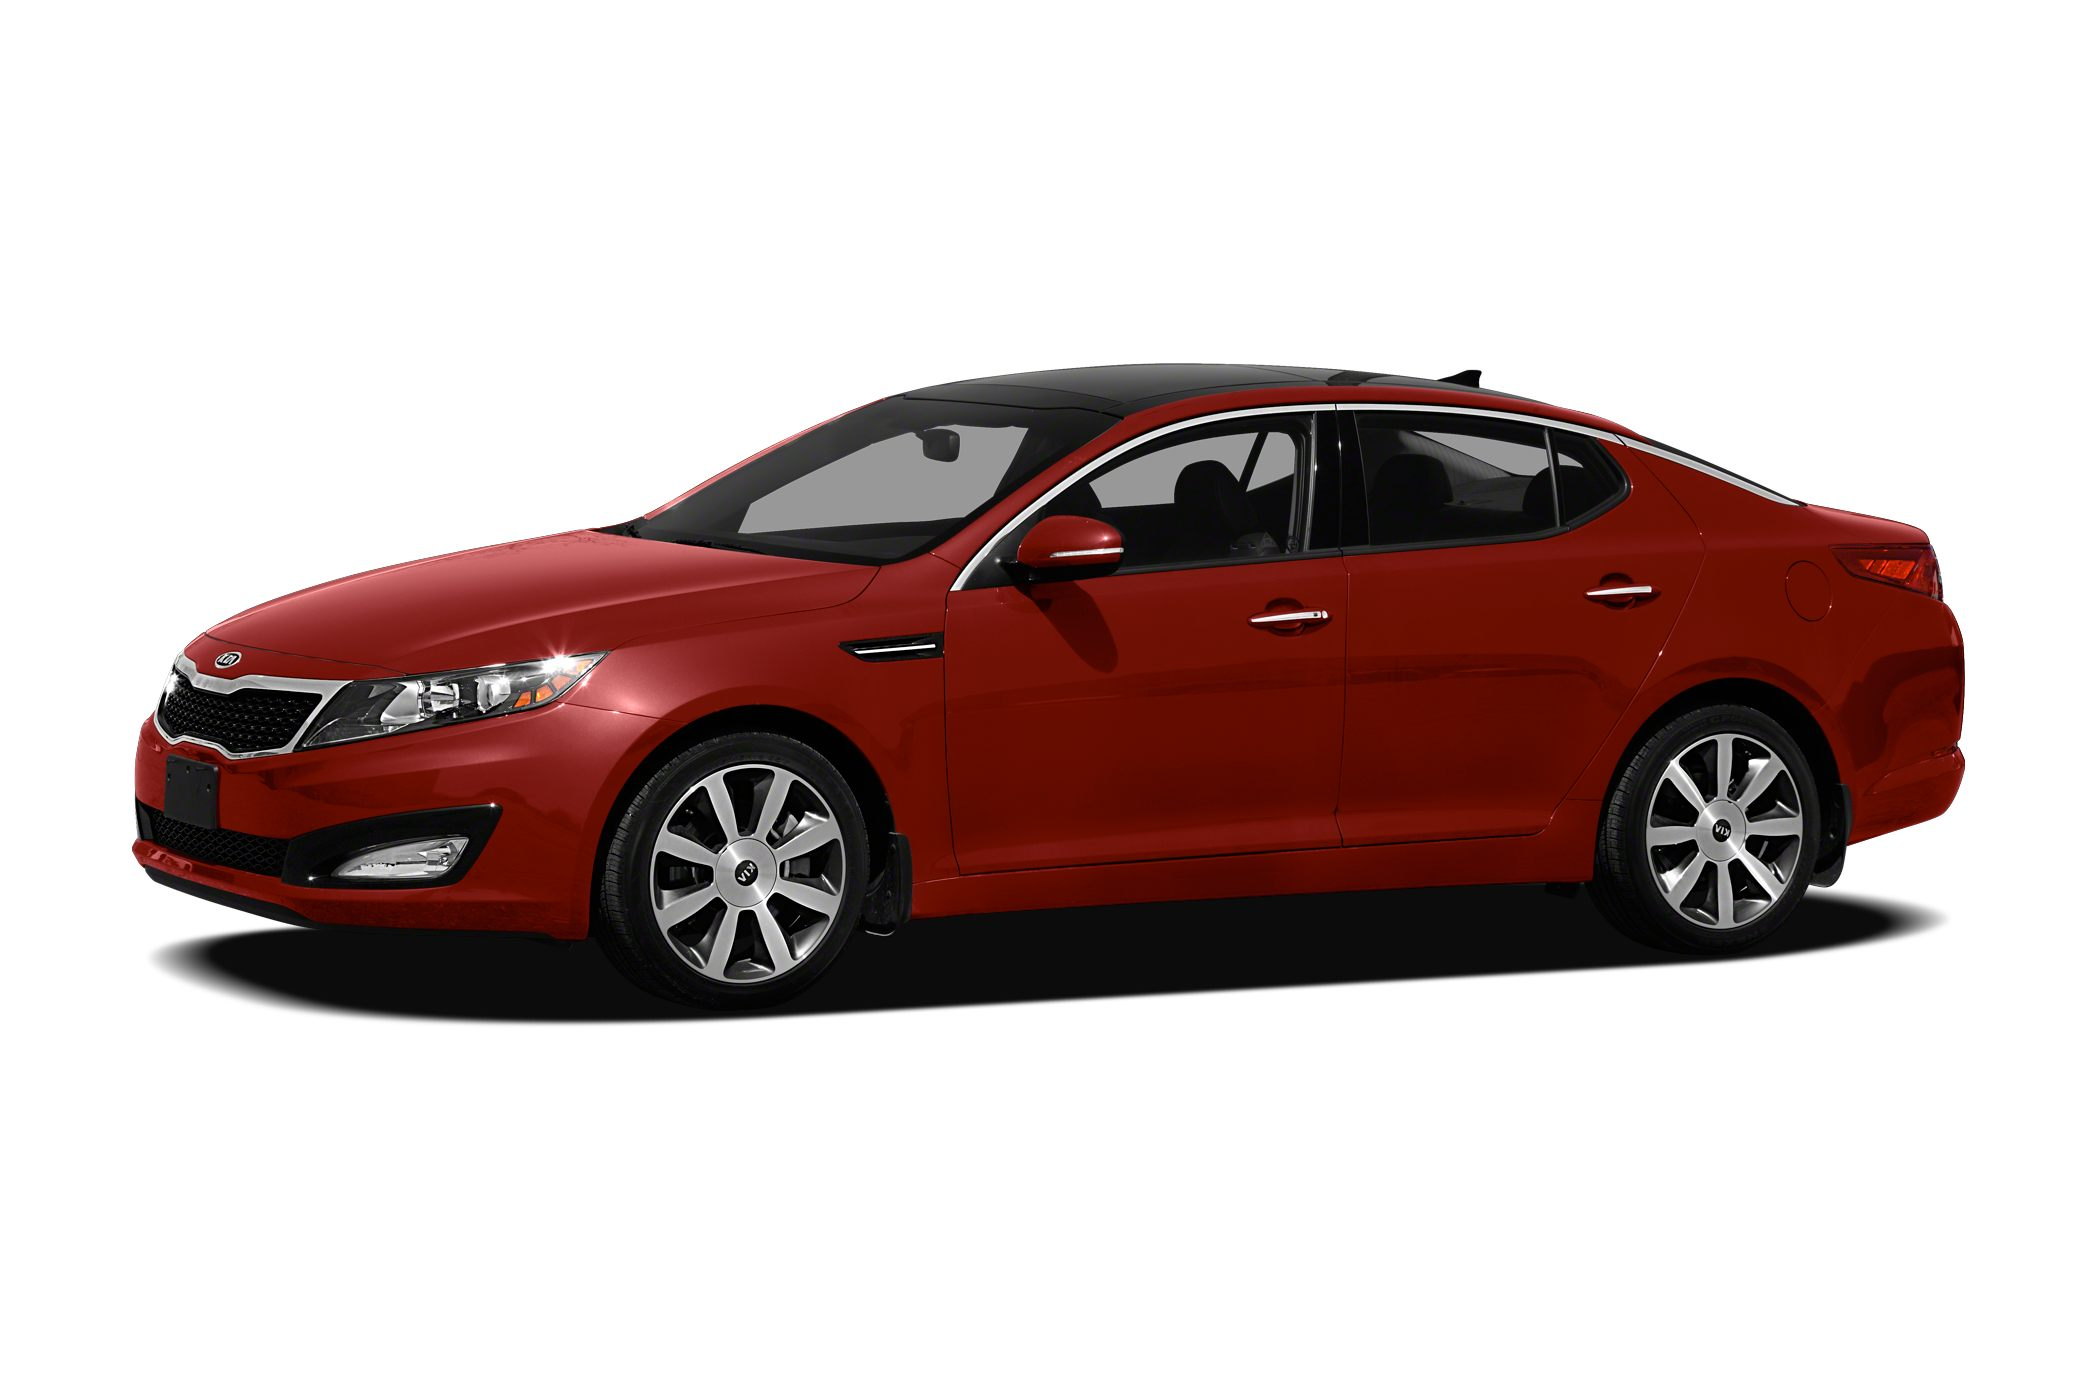 2012 Kia Optima SX Sedan for sale in Pendleton for $20,900 with 45,498 miles